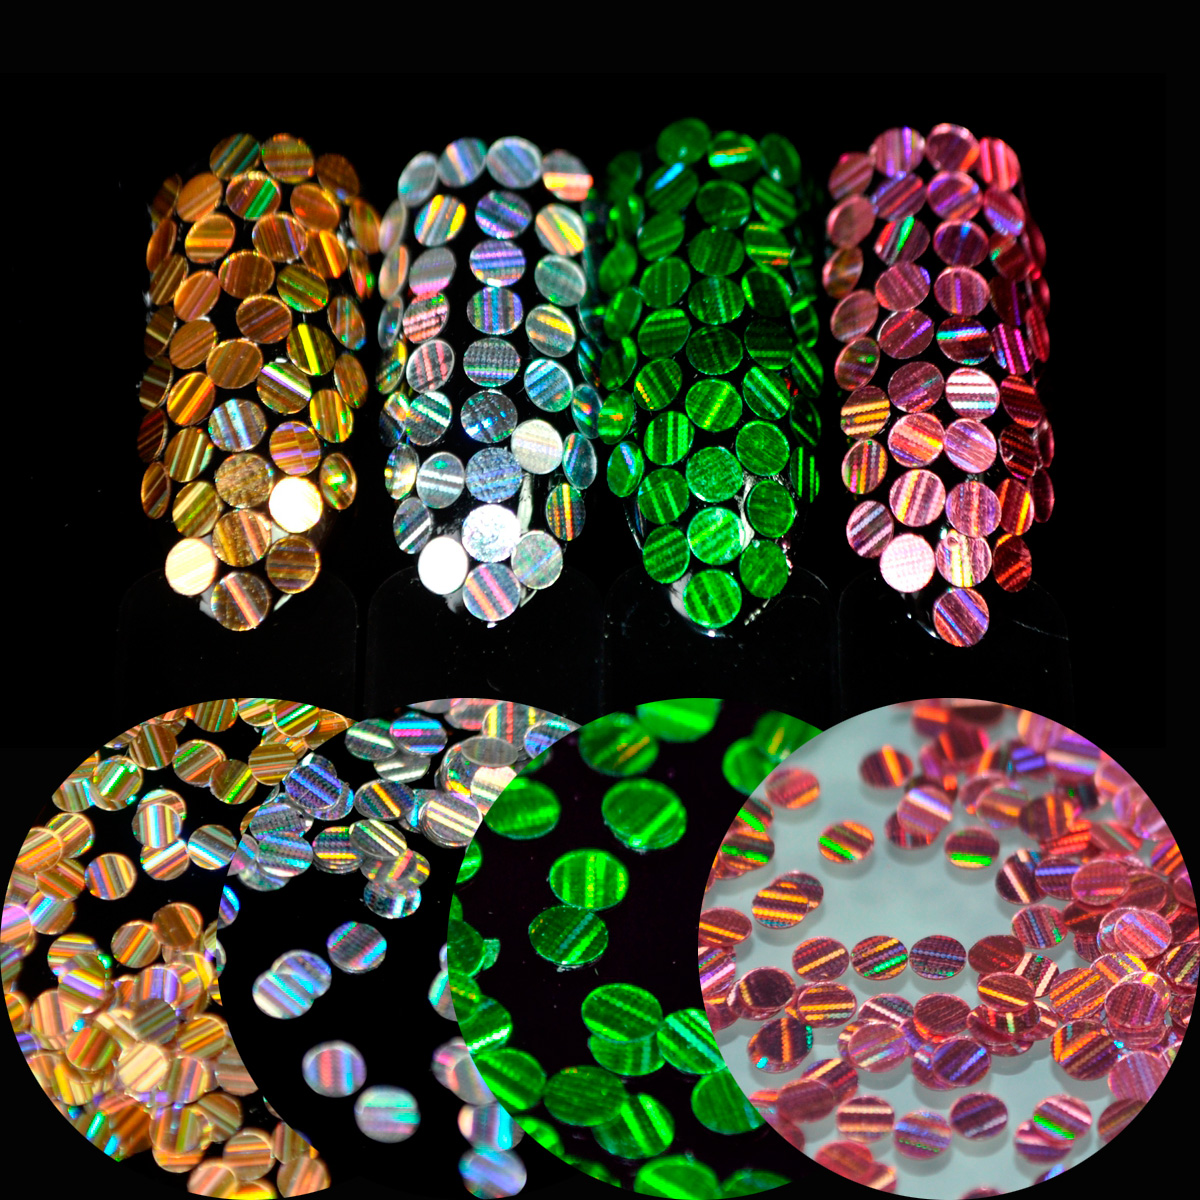 2.5mm Nail Round Sequins Laser Color Stripe DIY Nail Art Glitter Seqiuns Full Cover Nails Tips 1g / Bottle